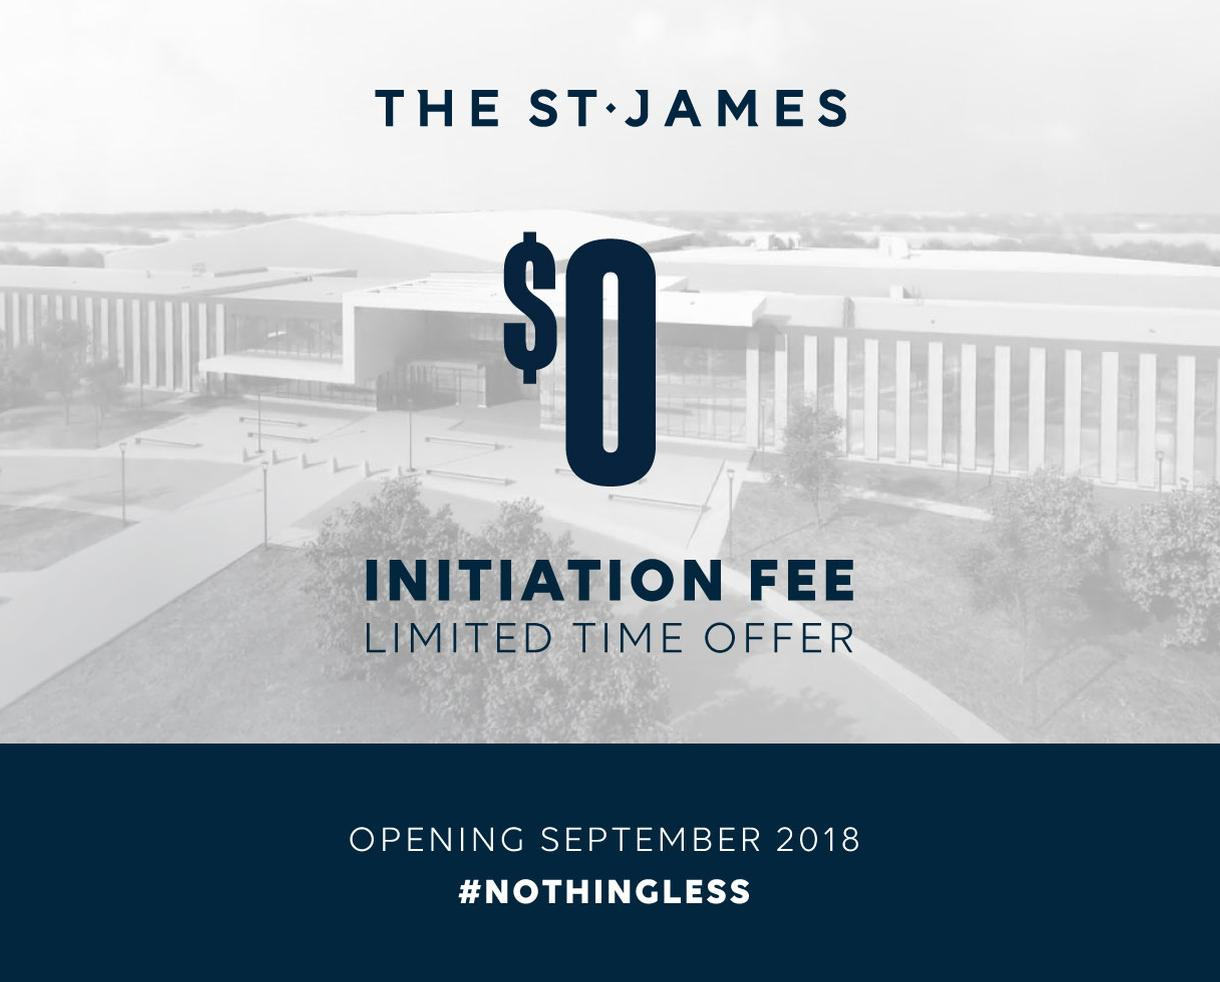 THE ST. JAMES: Opening in September!